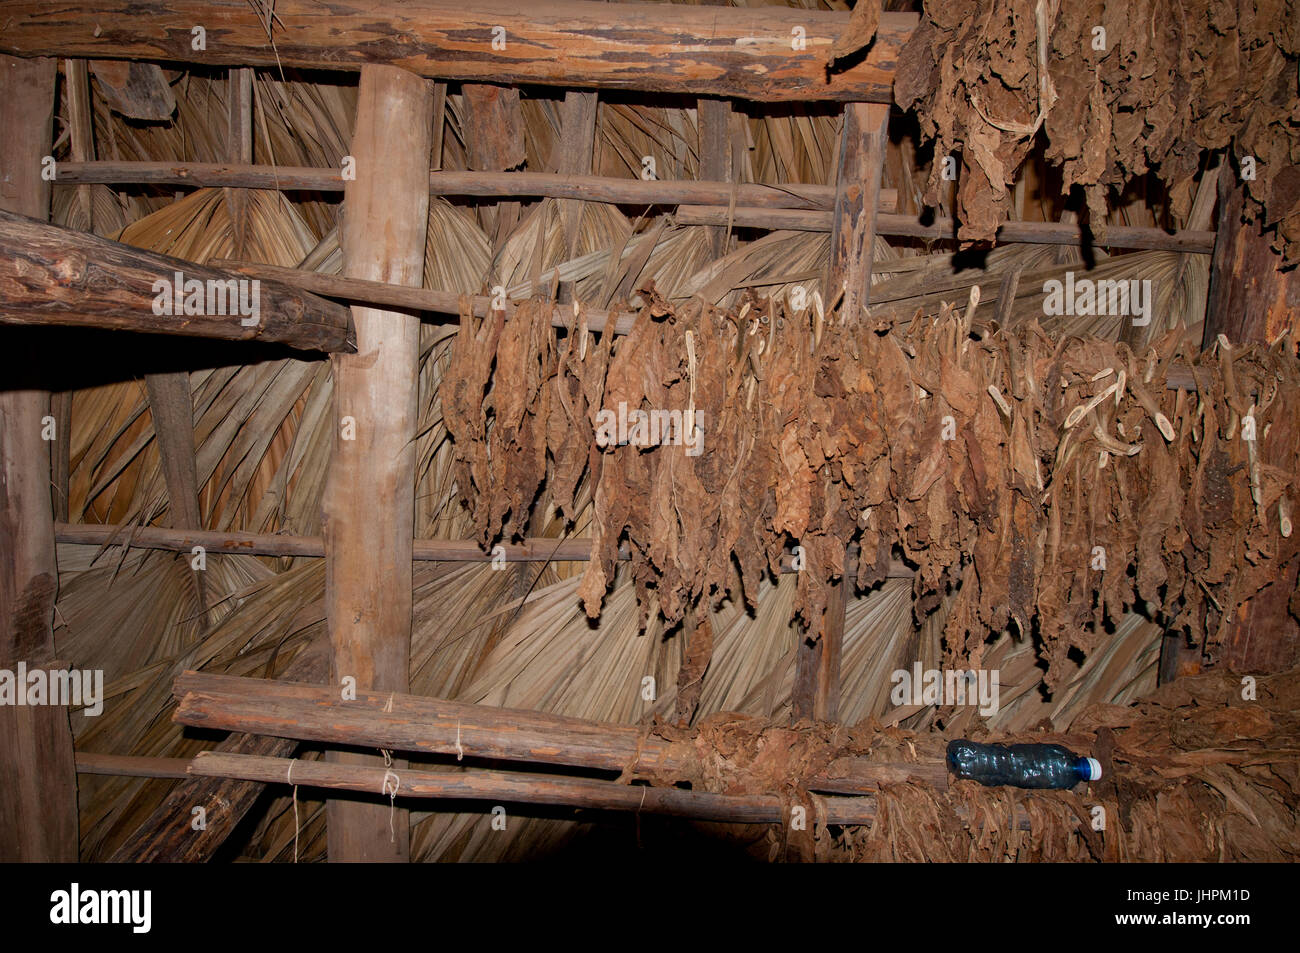 Cuban tobacco leaves drying in a drying hut near Vinalles, Cuba - Stock Image